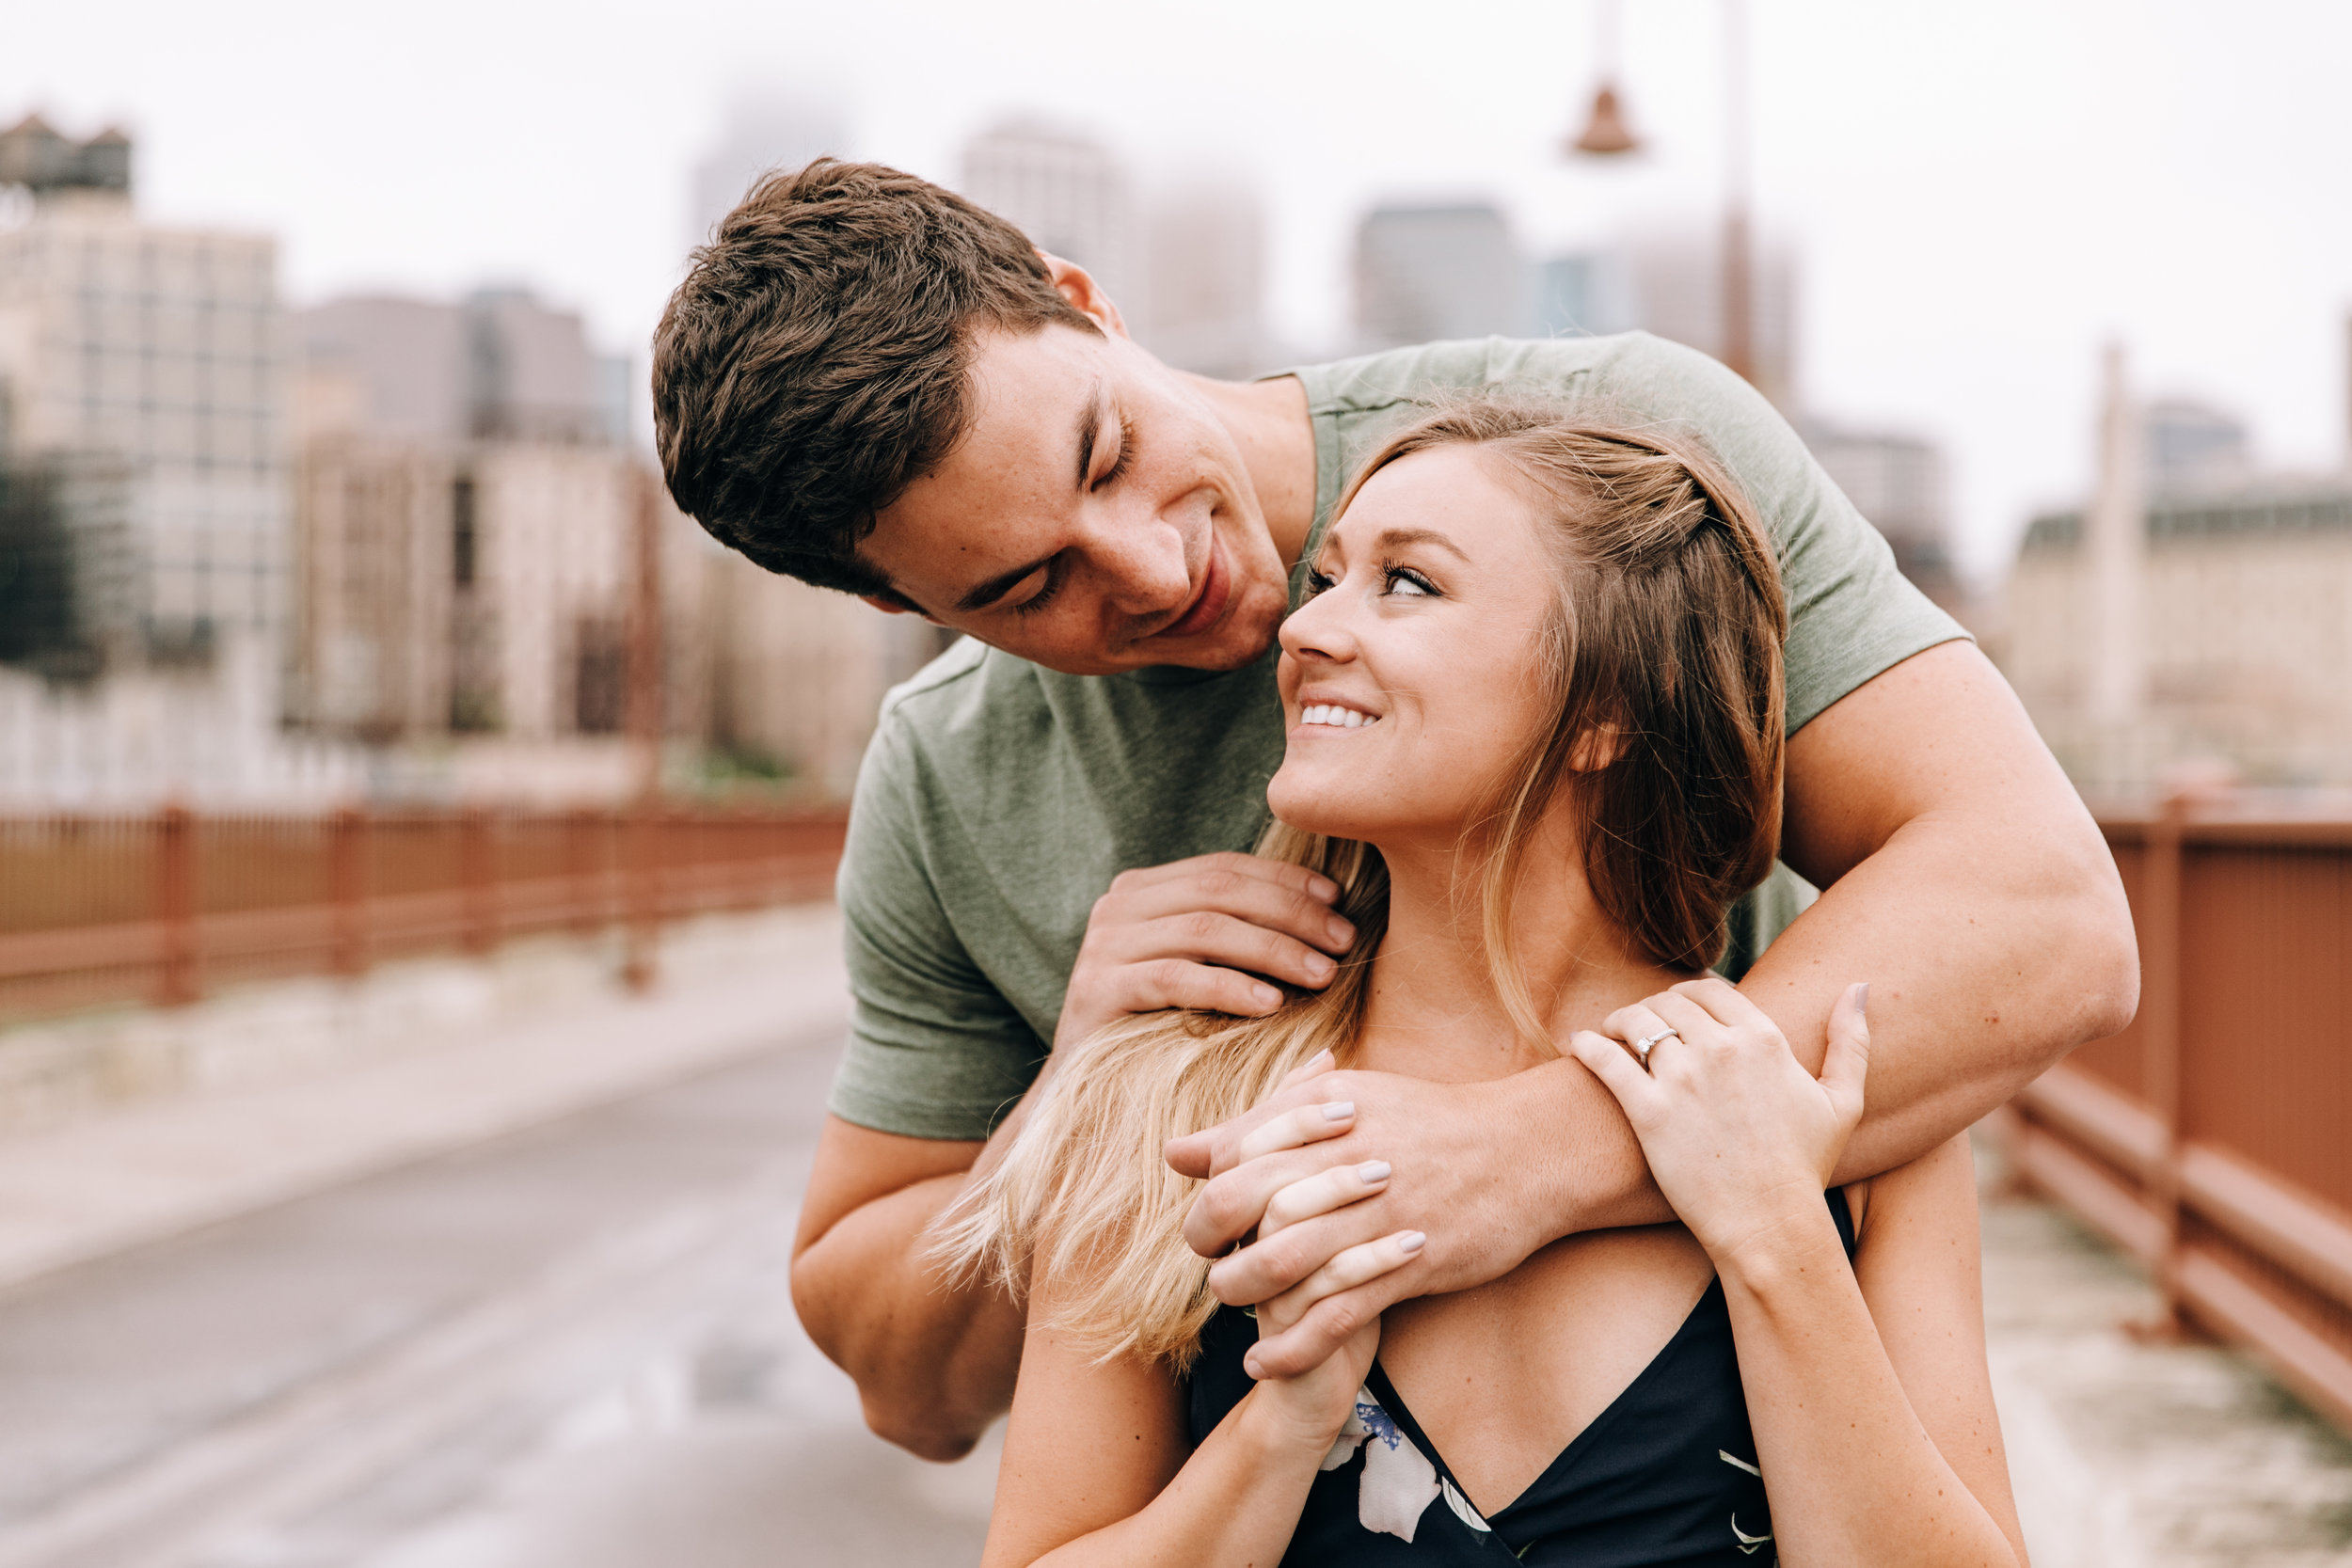 Minneapolis engagement photographer, Minneapolis engagement session, downtown Minneapolis, Minnesota engagement session, Minnesota engagement photographer, engagement session in Minneapolis